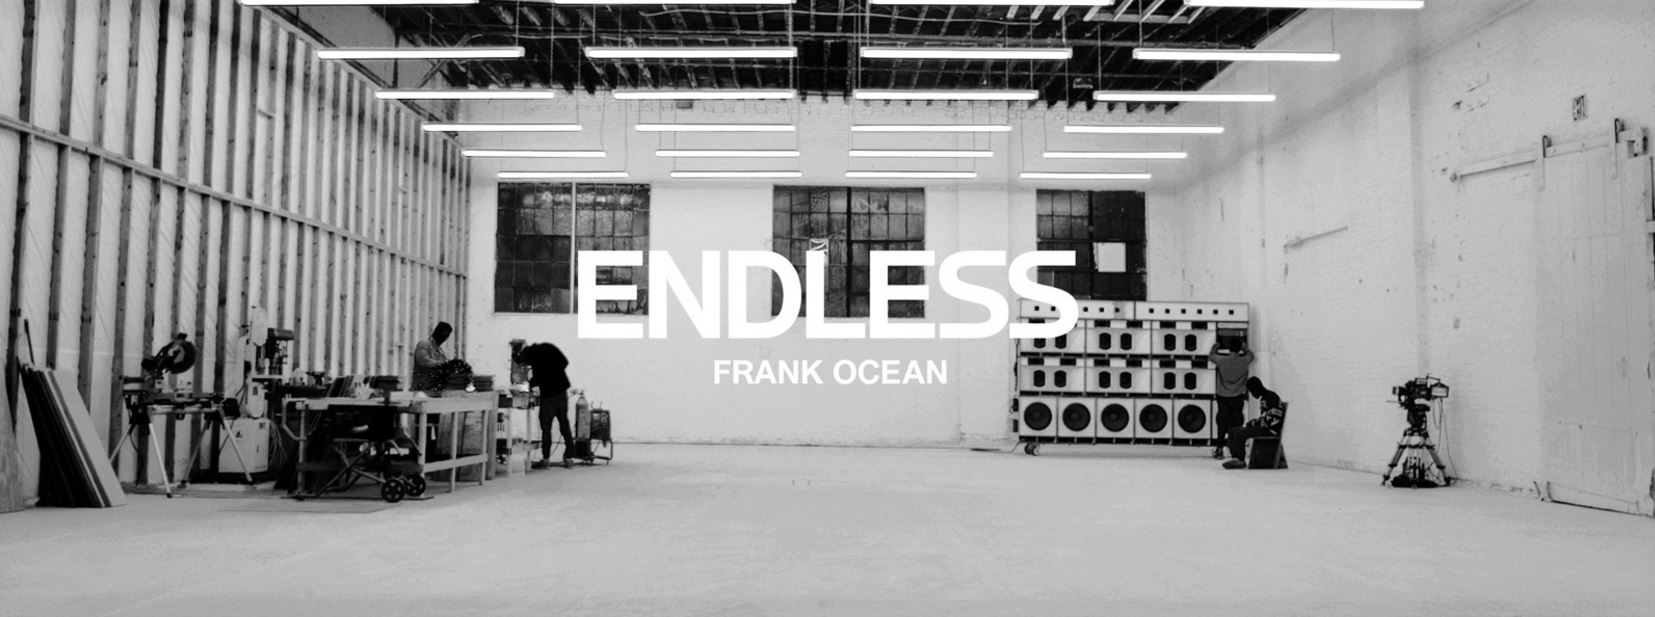 Endless Frank Ocean out now exclusively on Apple Music.JPG